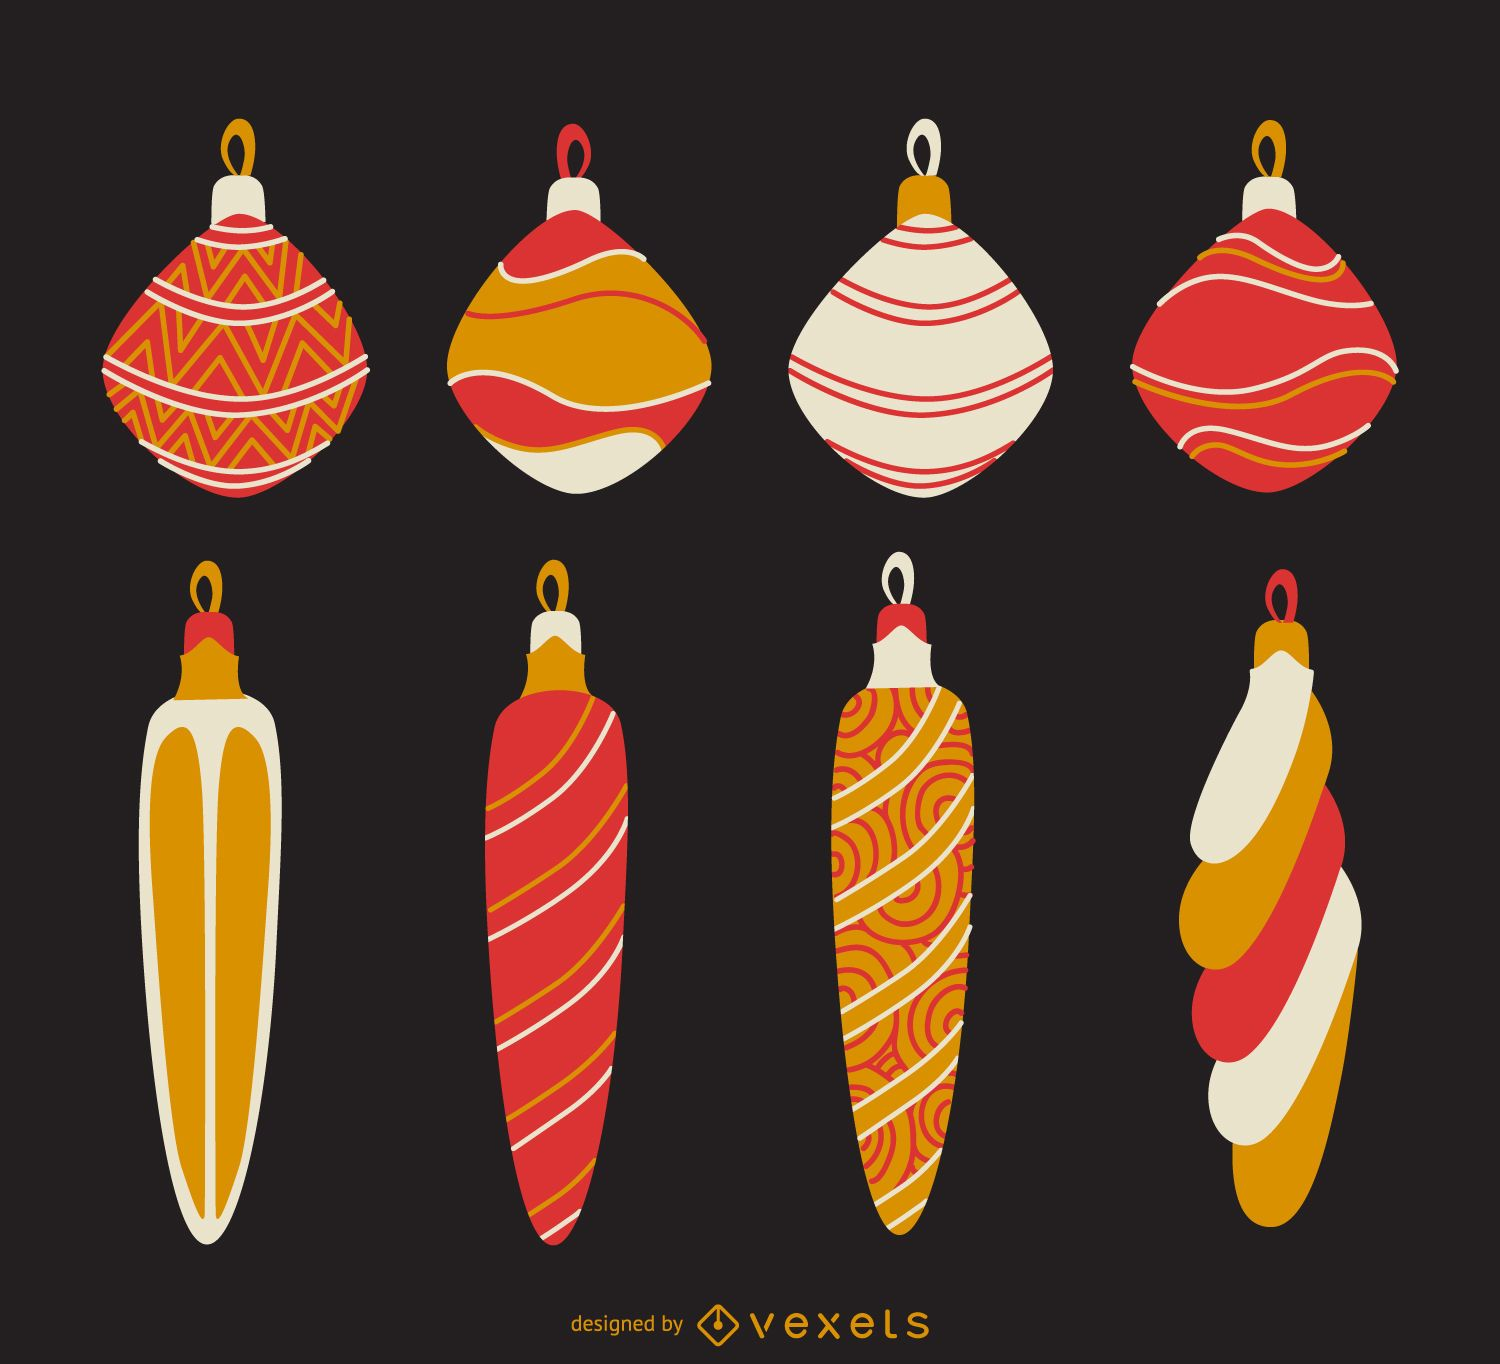 Christmas Striped Ornament pack